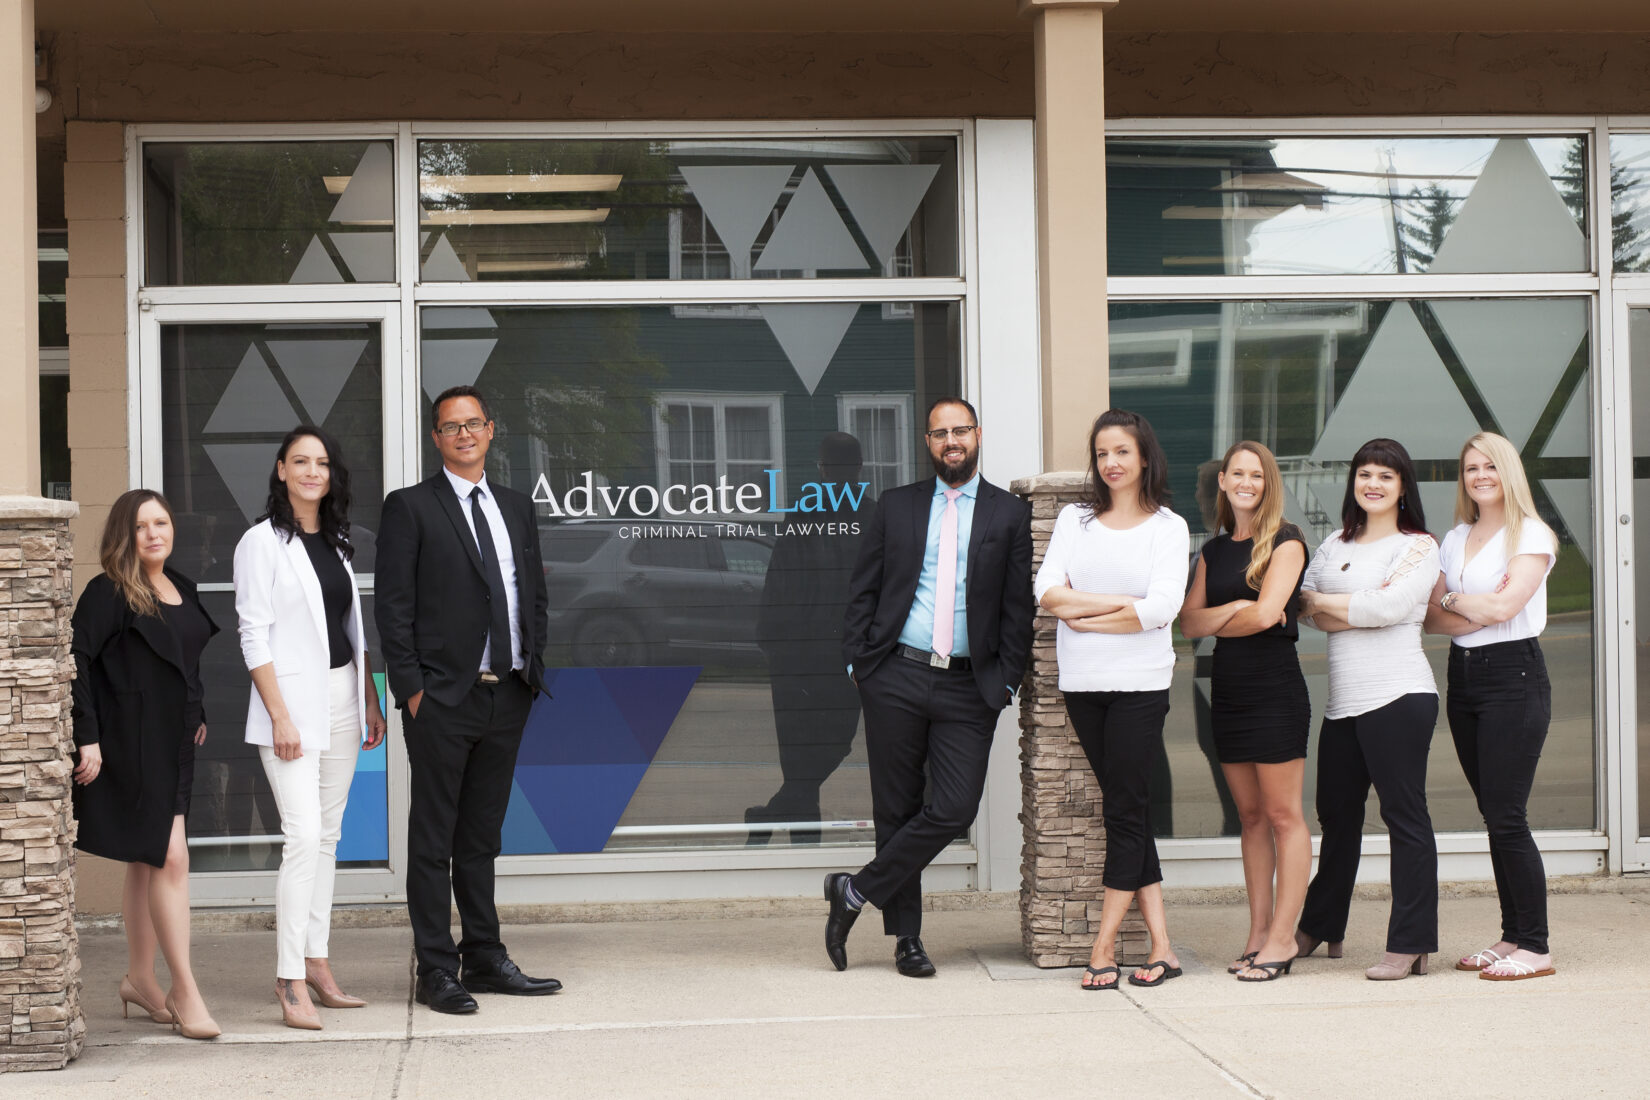 Business Spotlight: Advocate Law